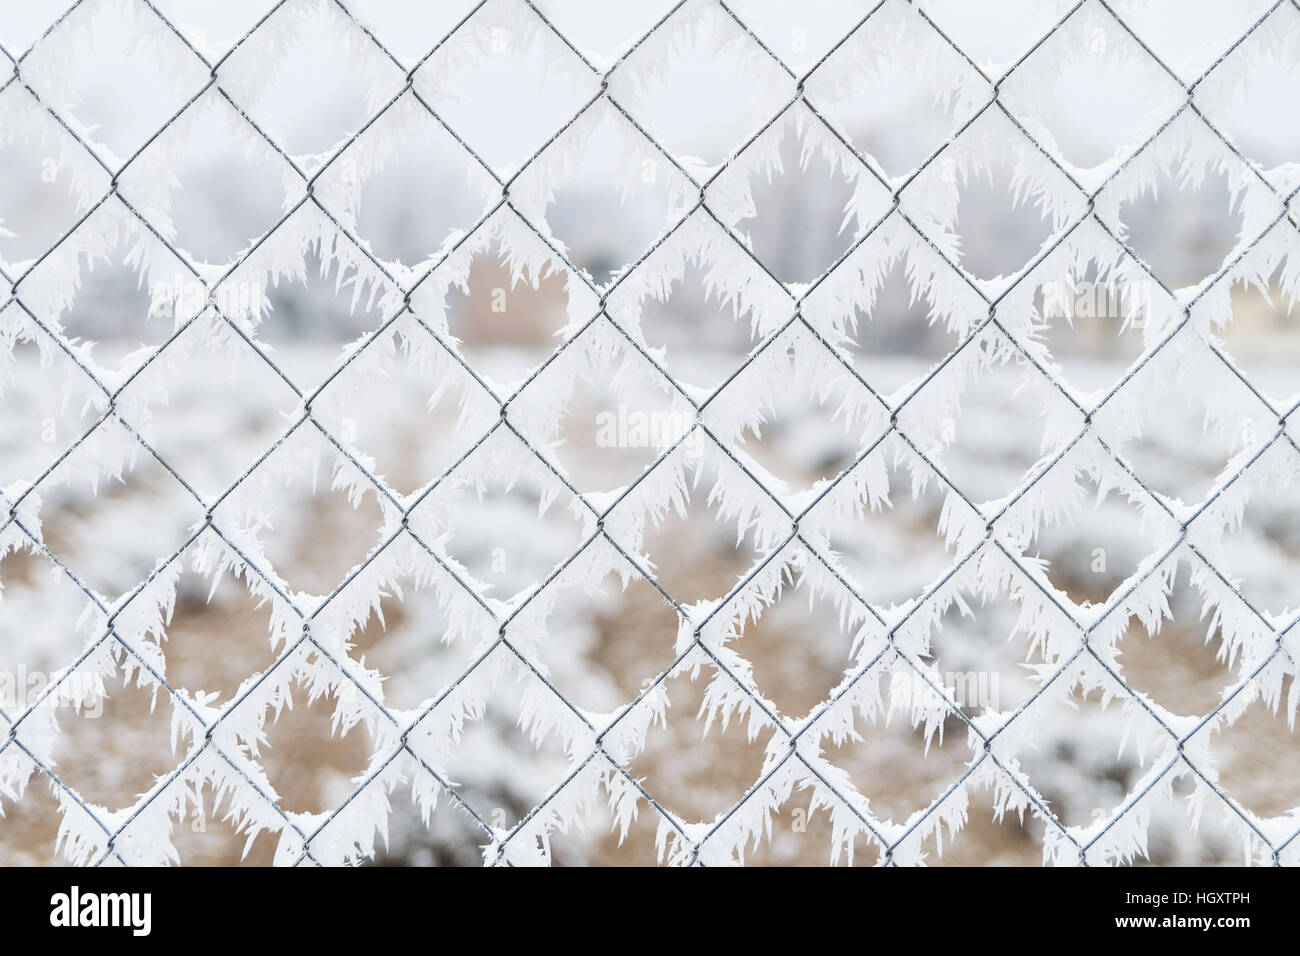 Frozen mesh fence wires with ice in winter background - Stock Image